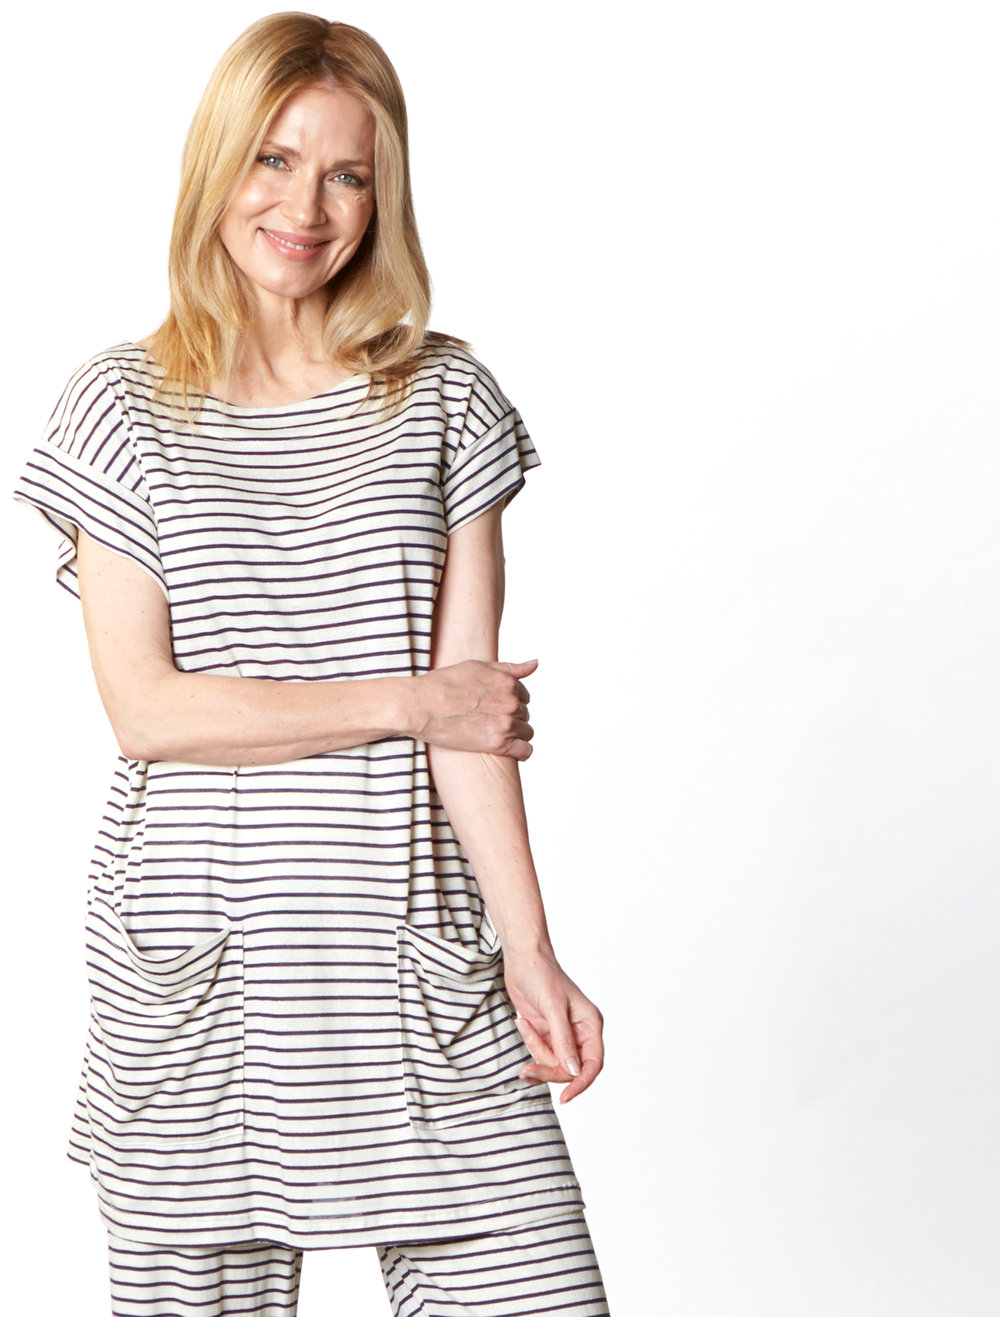 Clyde Tunic, Oscar Pant in Cream/Blue Italian Striped Jersey